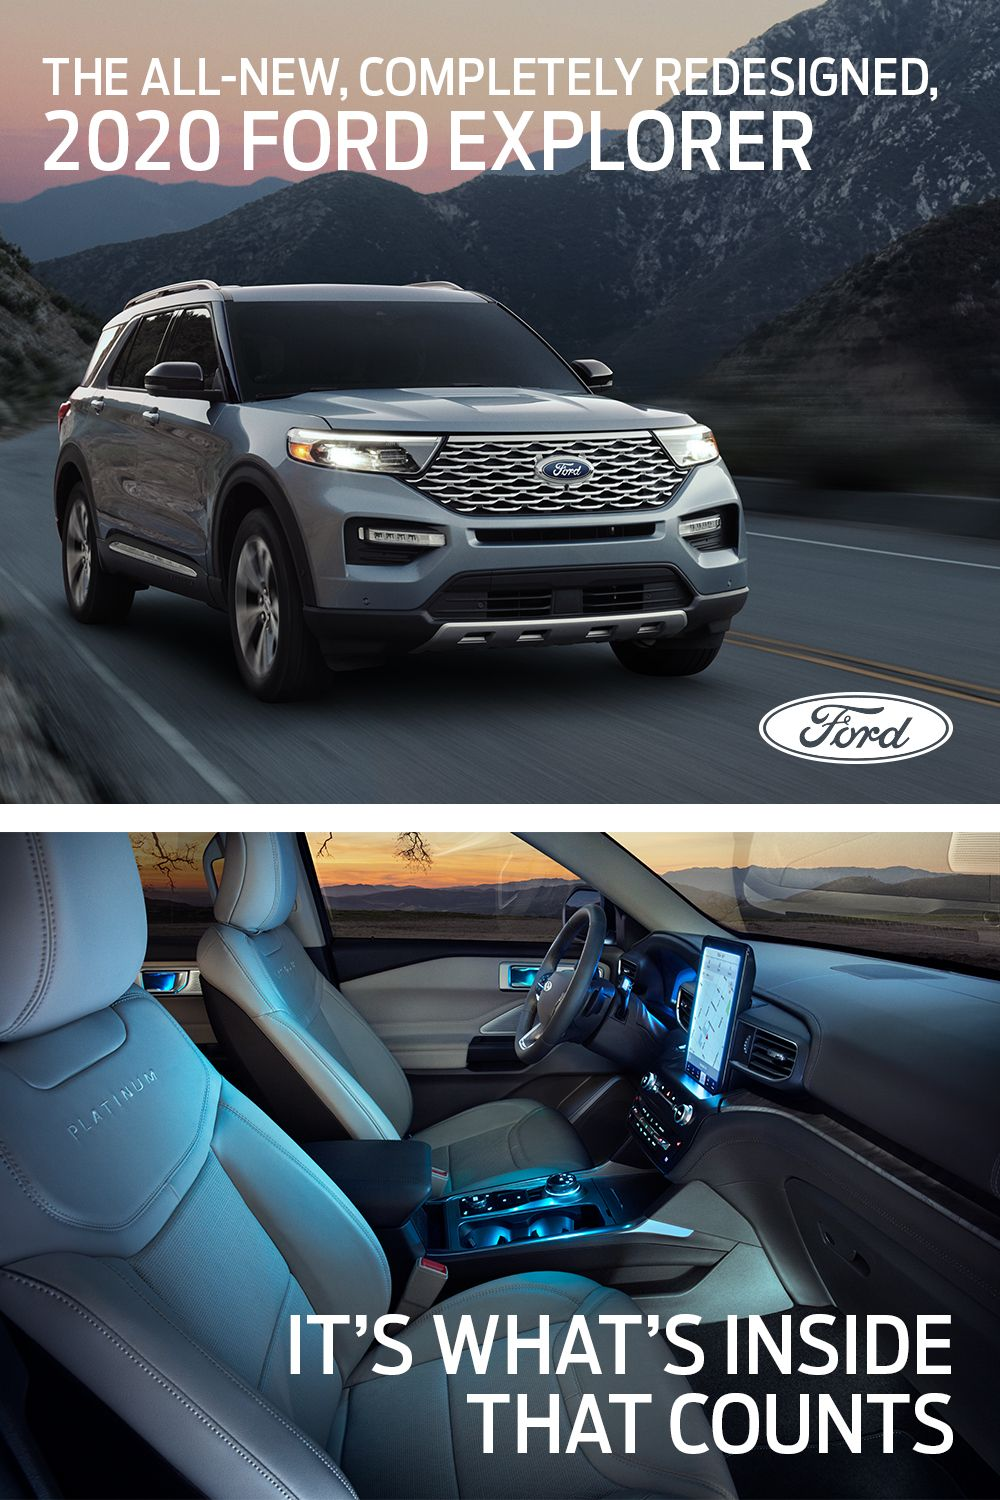 With Images 2020 Ford Explorer Ford Explorer Ford